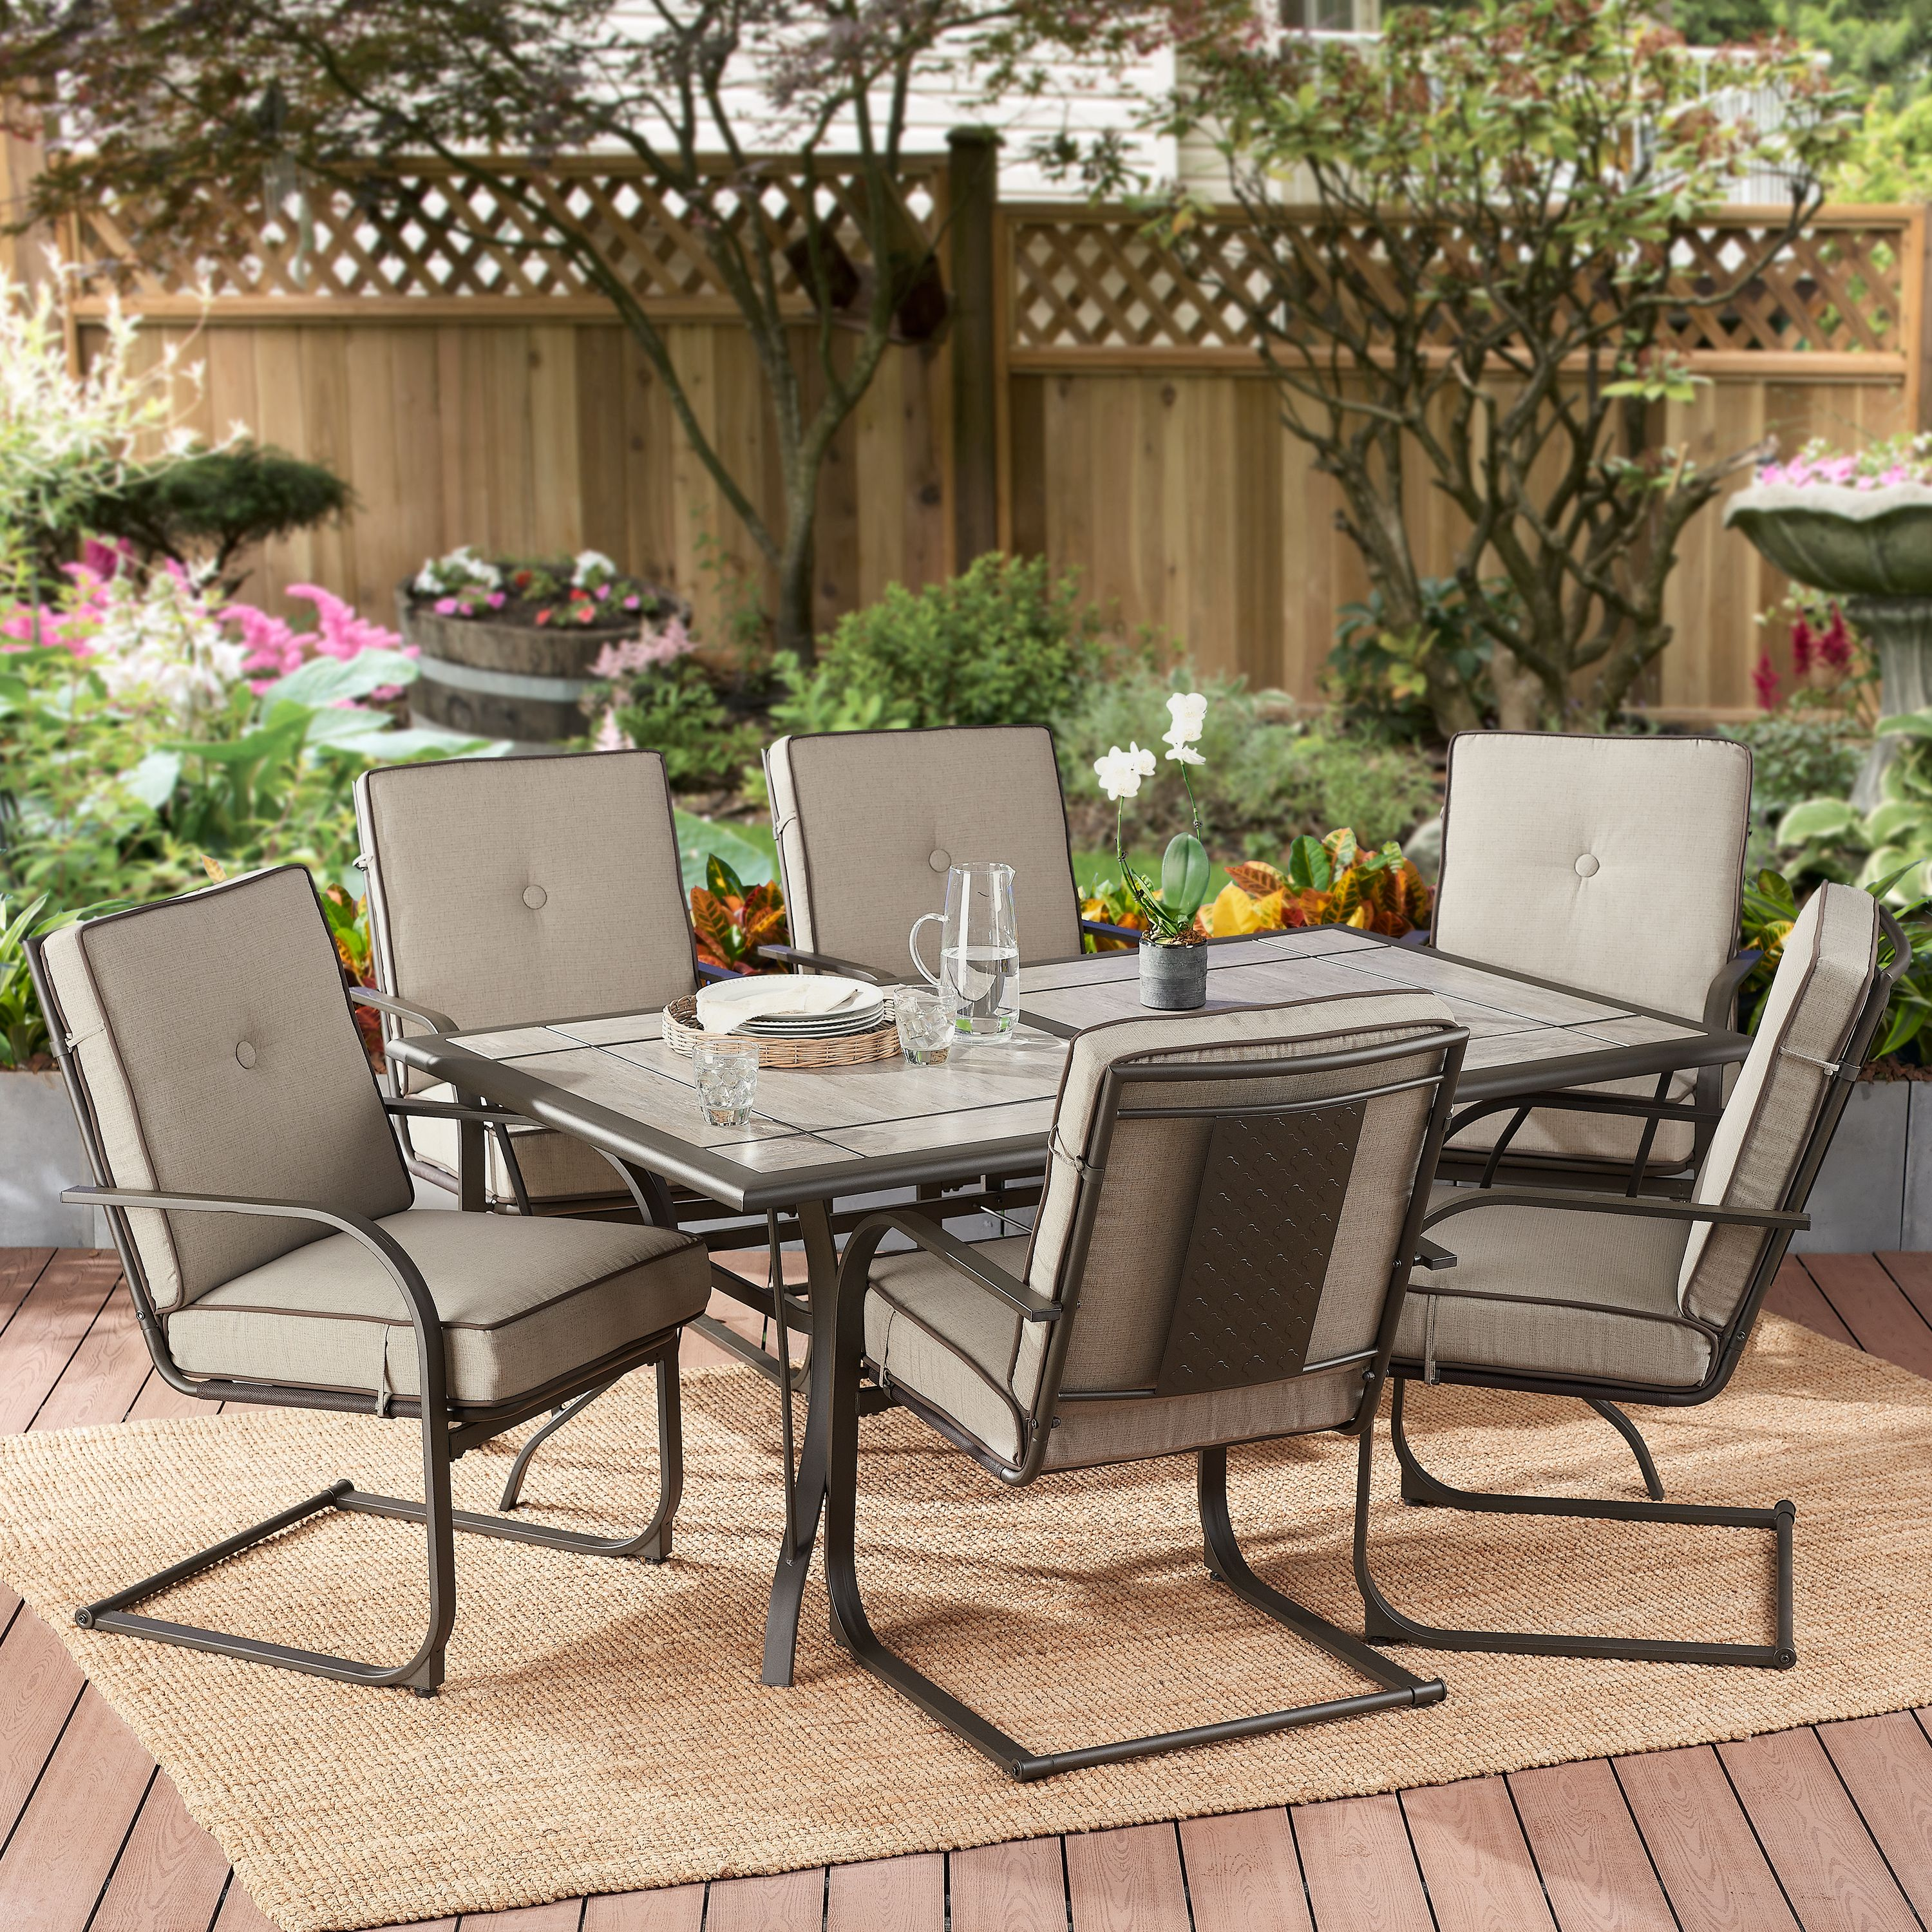 better homes gardens everson patio dining chairs with gray cushions set of 6 walmart com